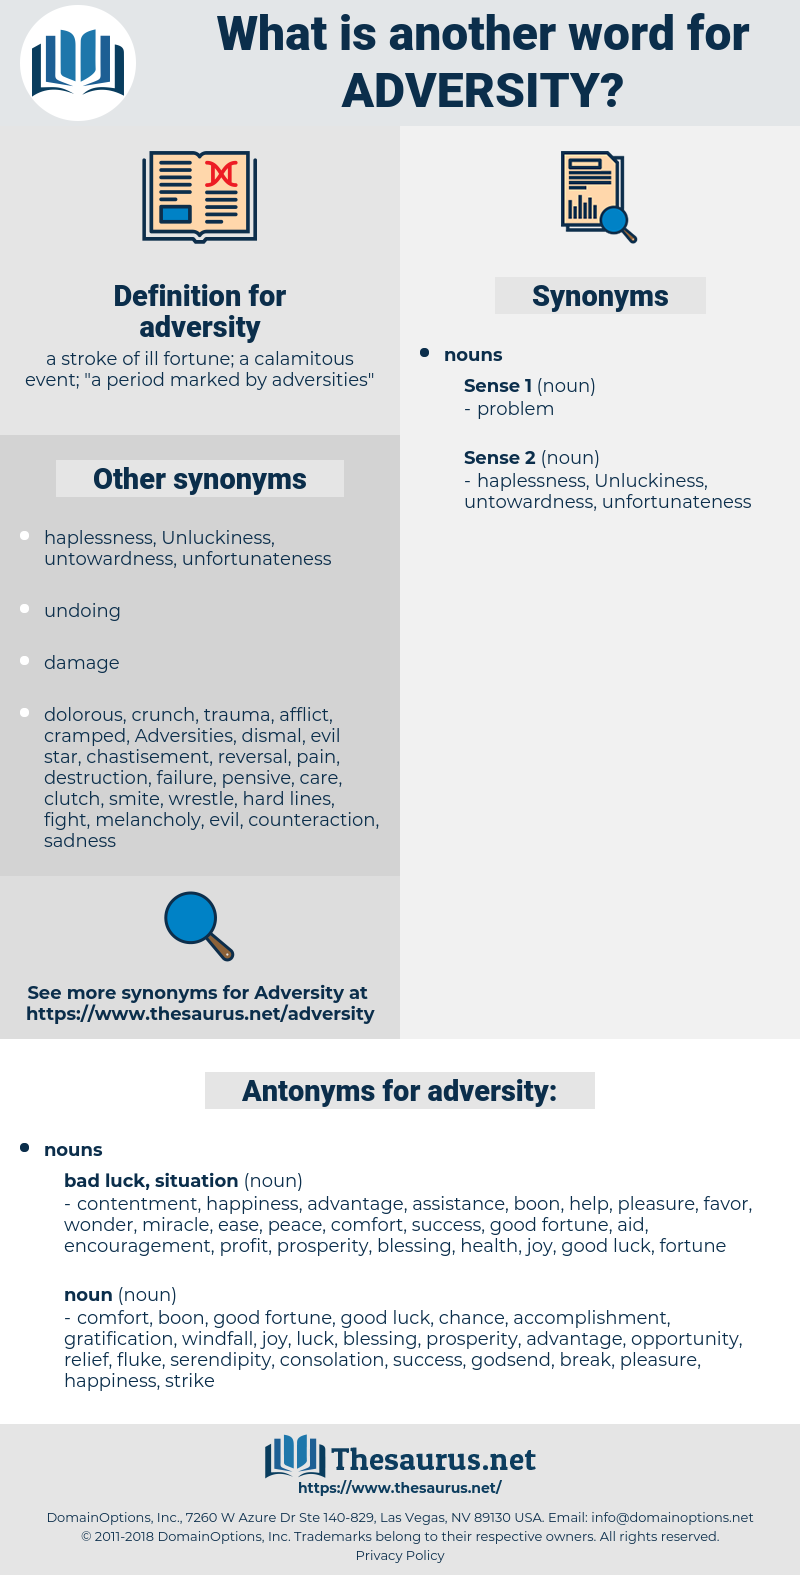 Synonyms for ADVERSITY - Thesaurus.net